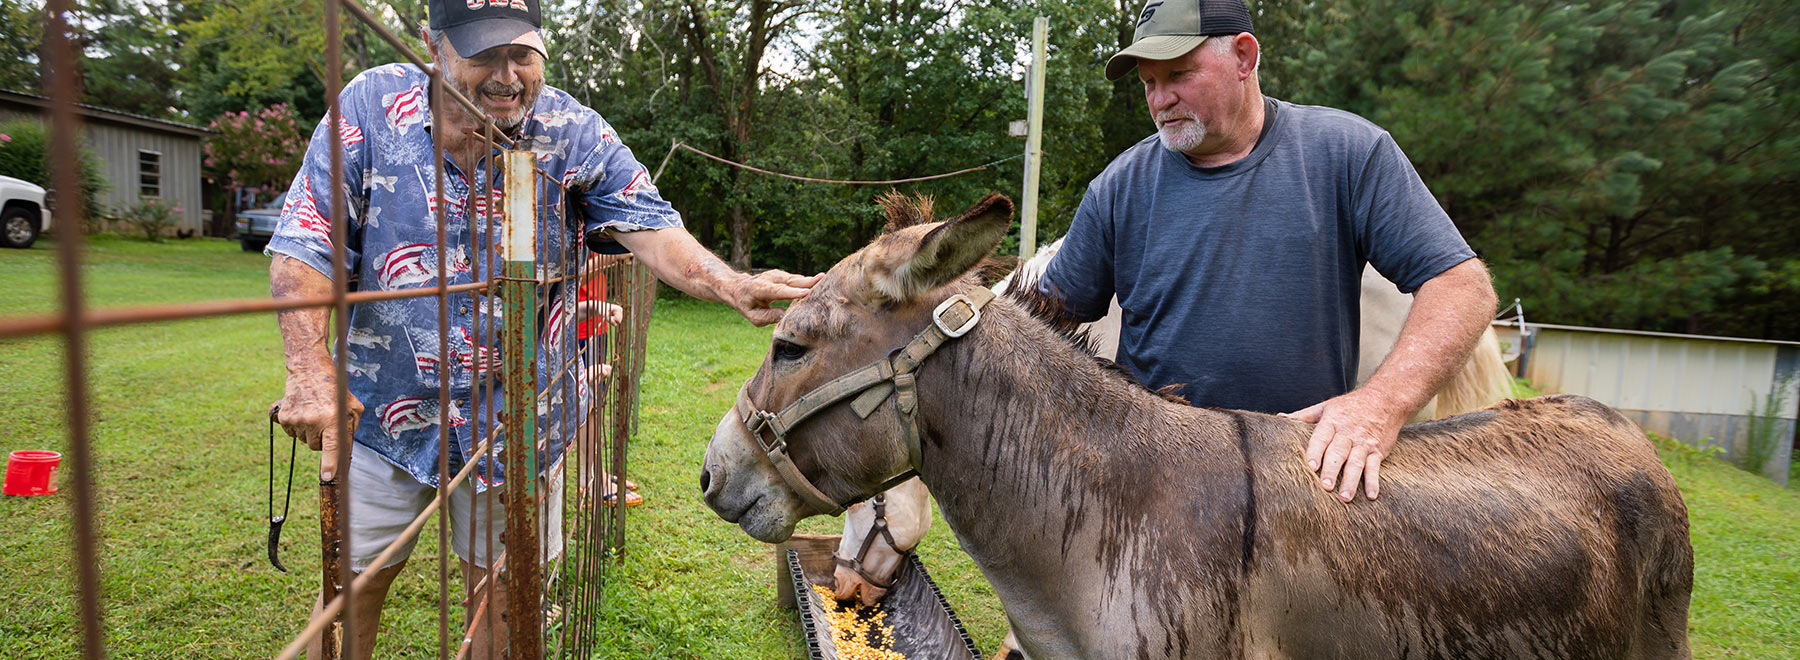 AirCare, blood clotting drug save man from death by donkey bite